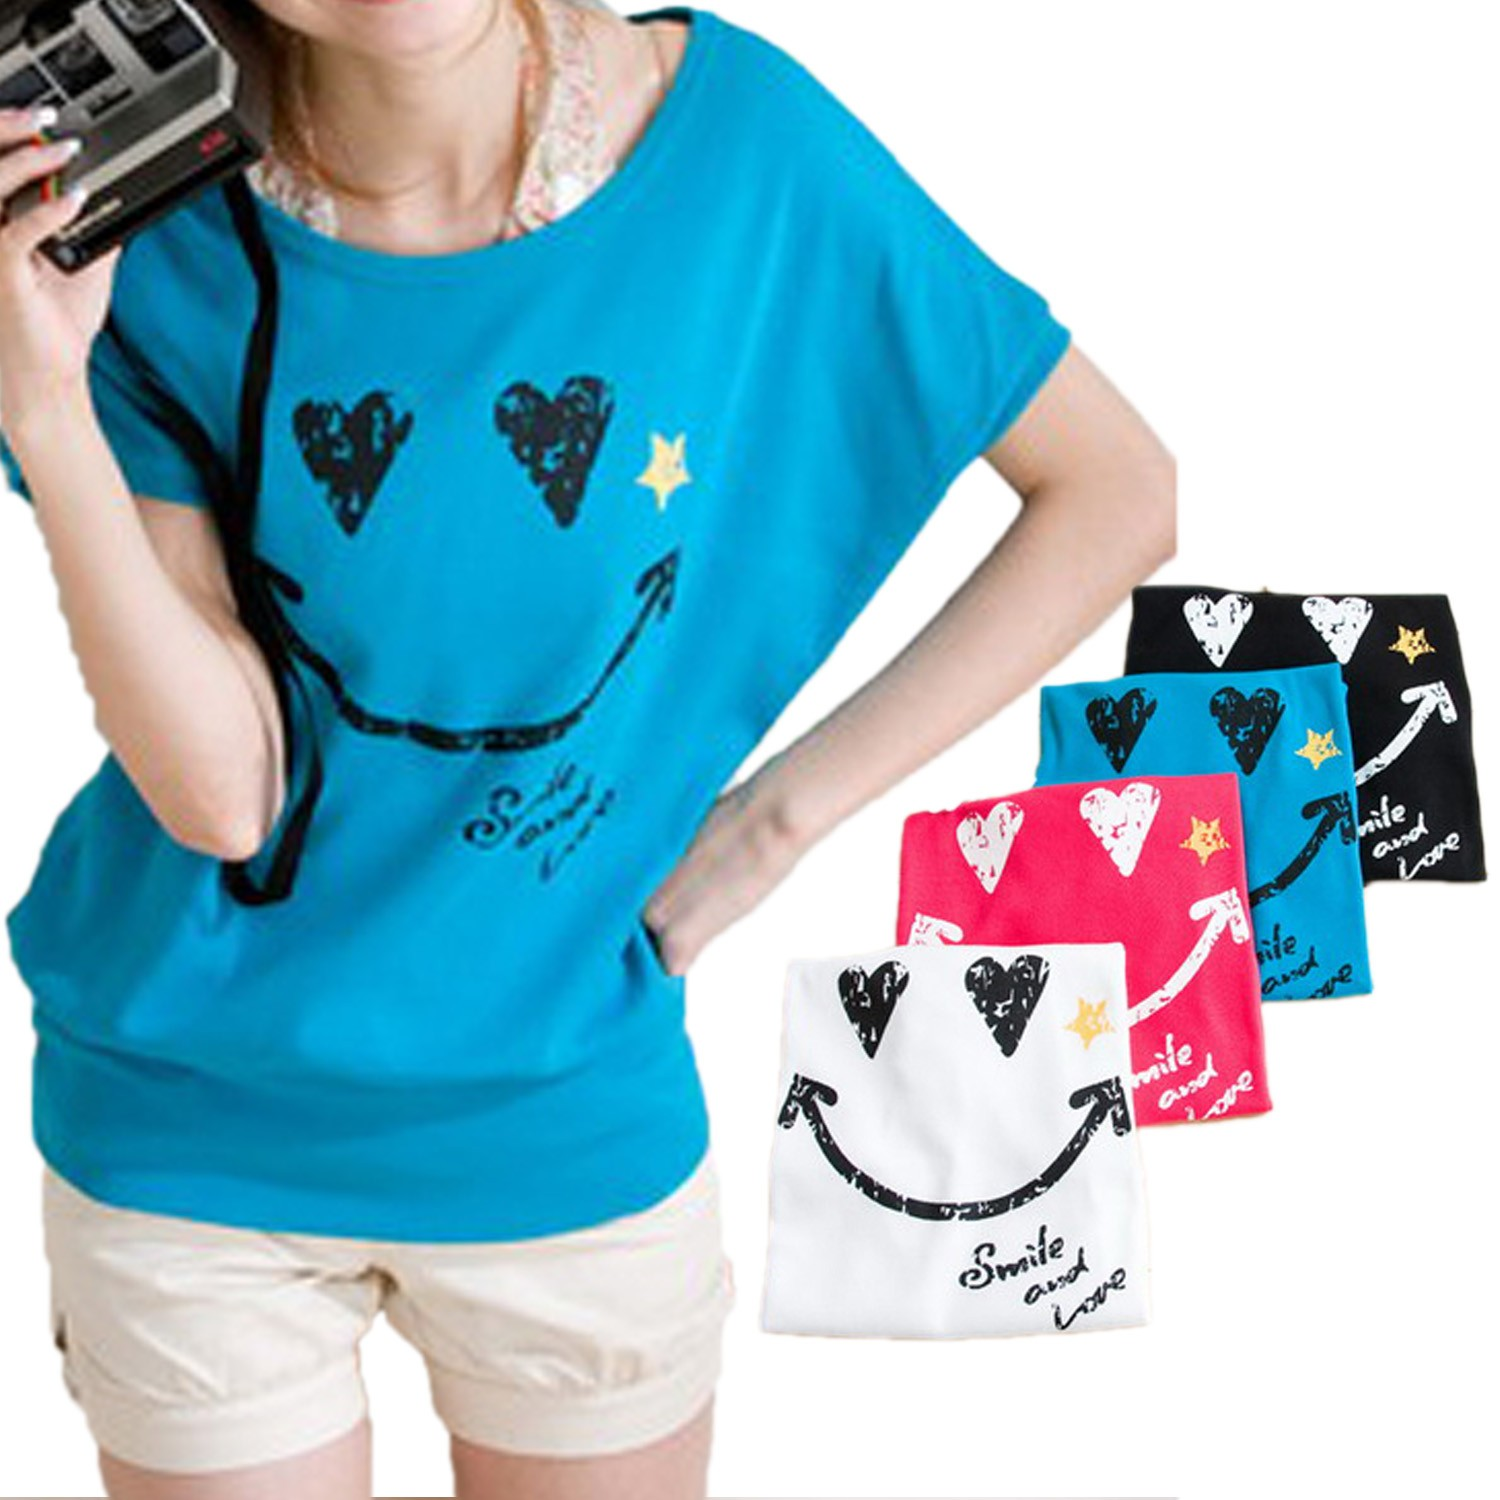 Smile Print Top Shirt - 614#